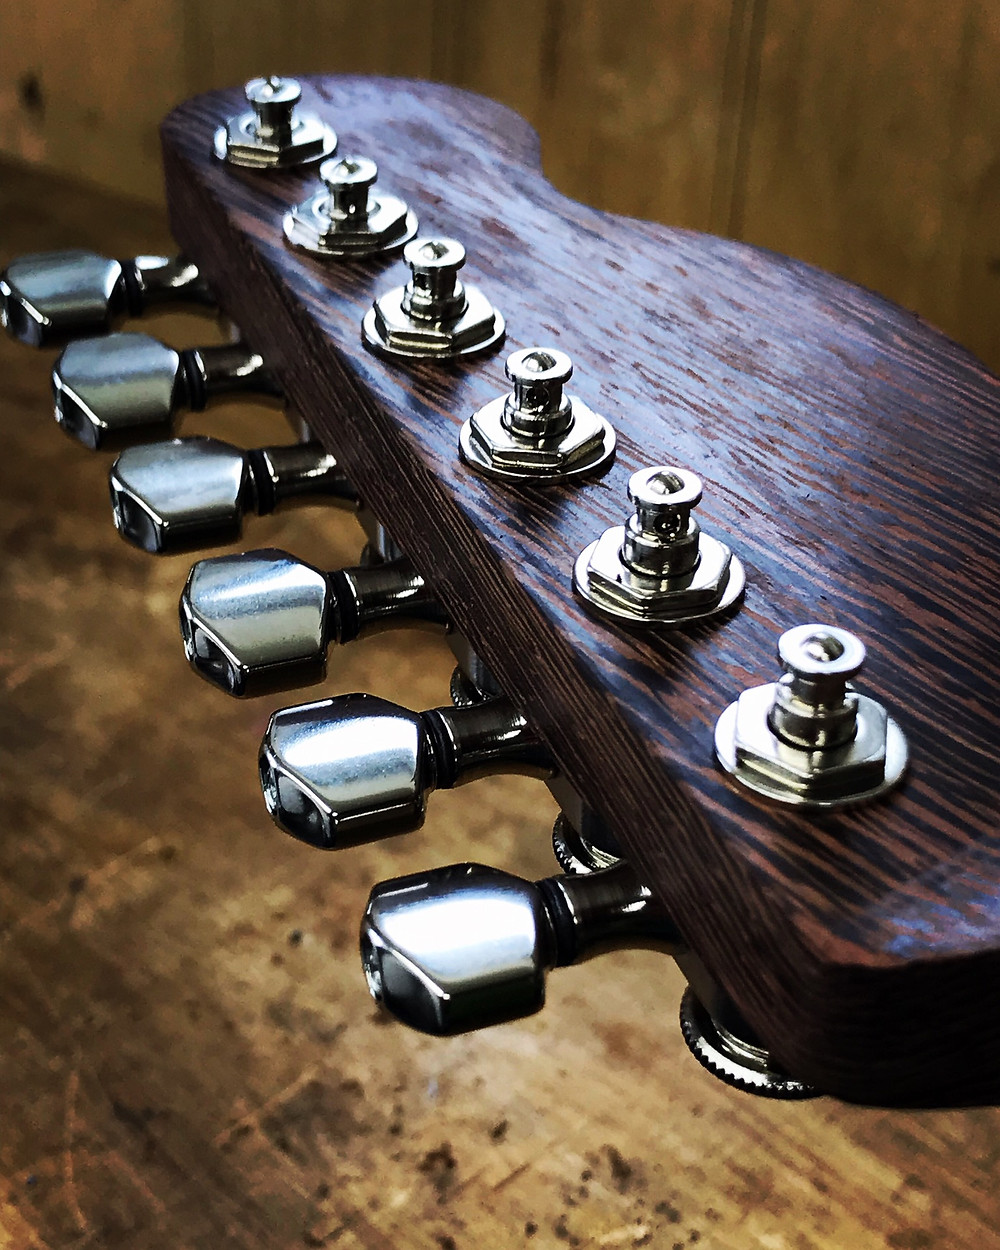 telecaster type guitar headstock neck made from wenge and fitted with Sperzel locking tuners on a custom electric by Malone Guitars in Billericay Essex